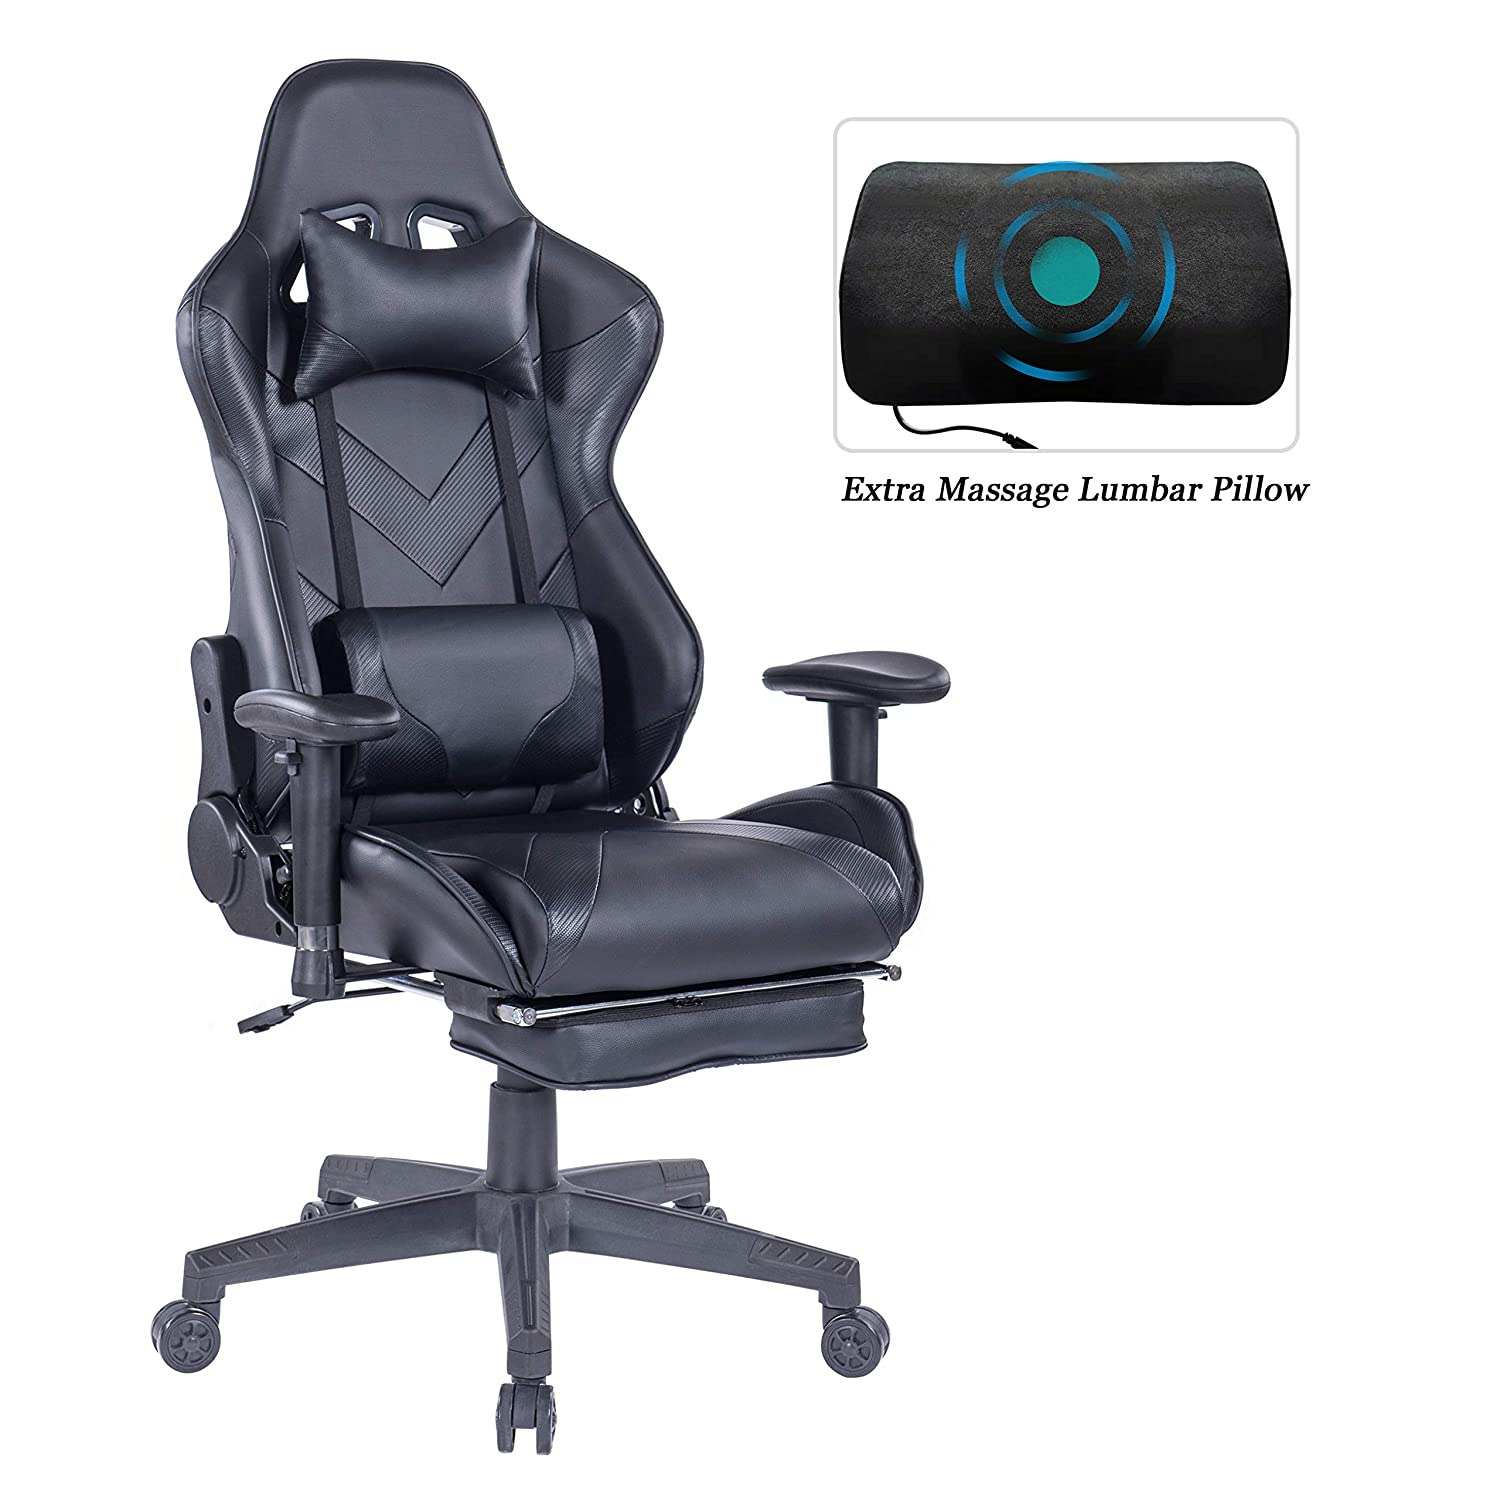 HEALGEN Gaming Chair with Retractable Footrest-Racing Style Gamer Chair-High-Back Ergonomic Reclining PC Computer Desk Office Chair with Headrest Lumbar Support Cushion (GM203 Black)